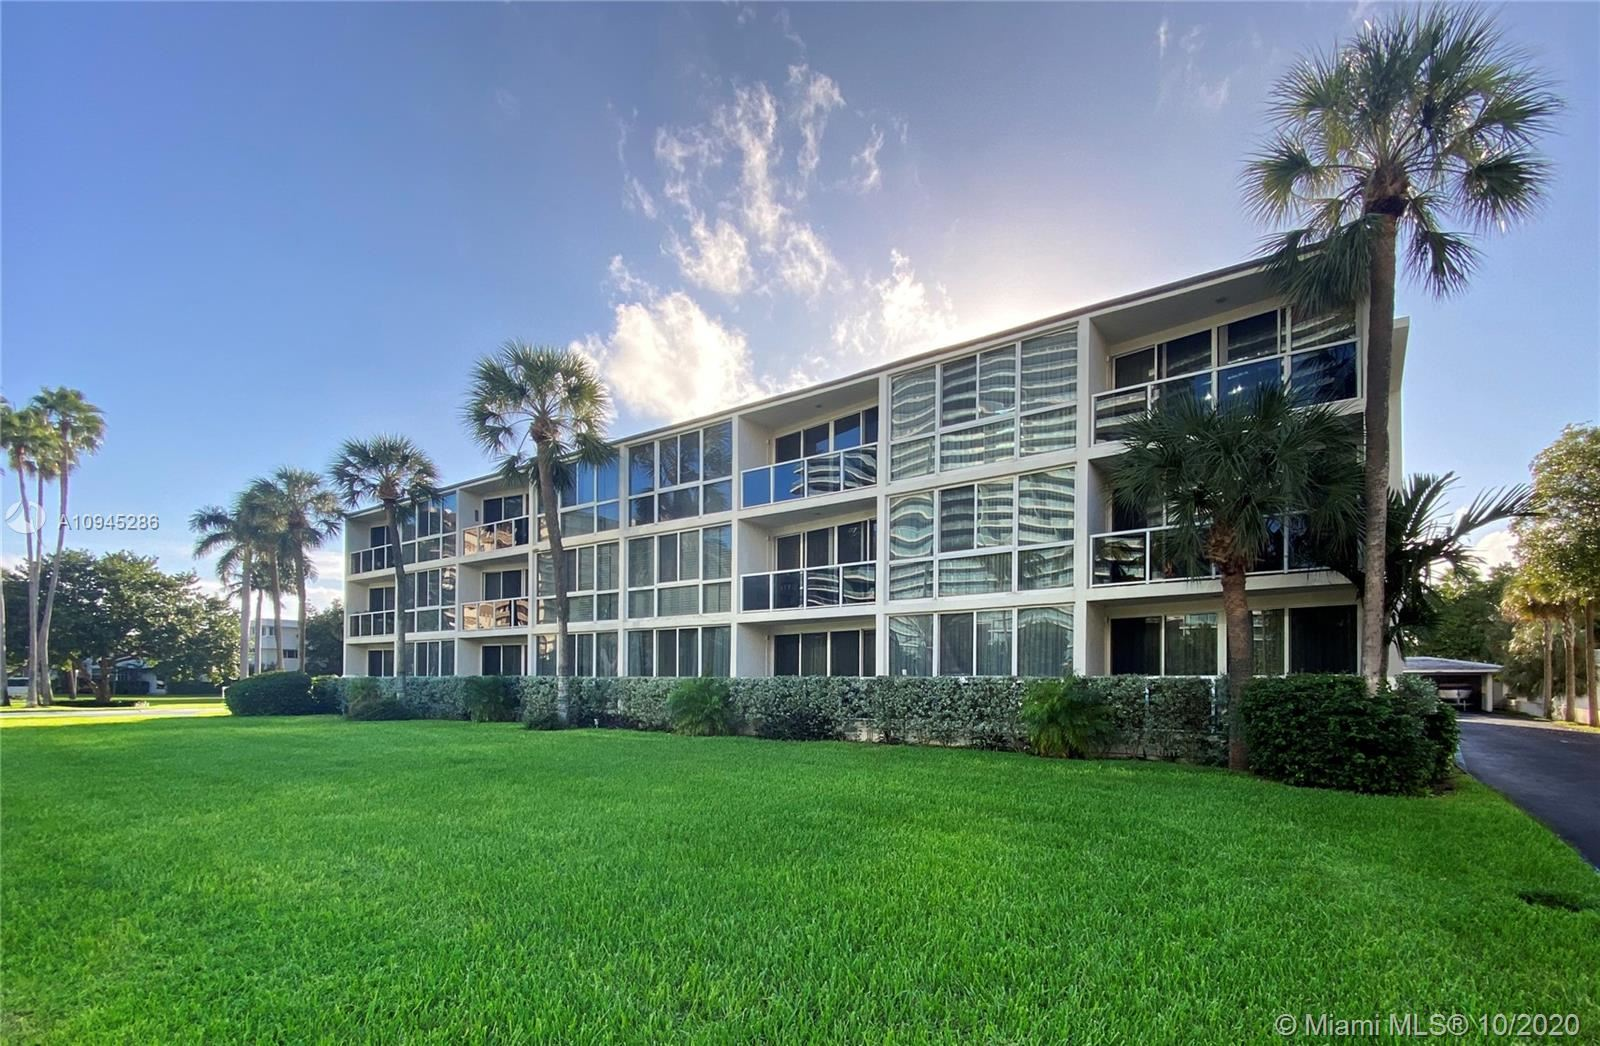 Photo of 1 Harbour Way #306, Bal Harbour, FL 33154 (MLS # A10945286)